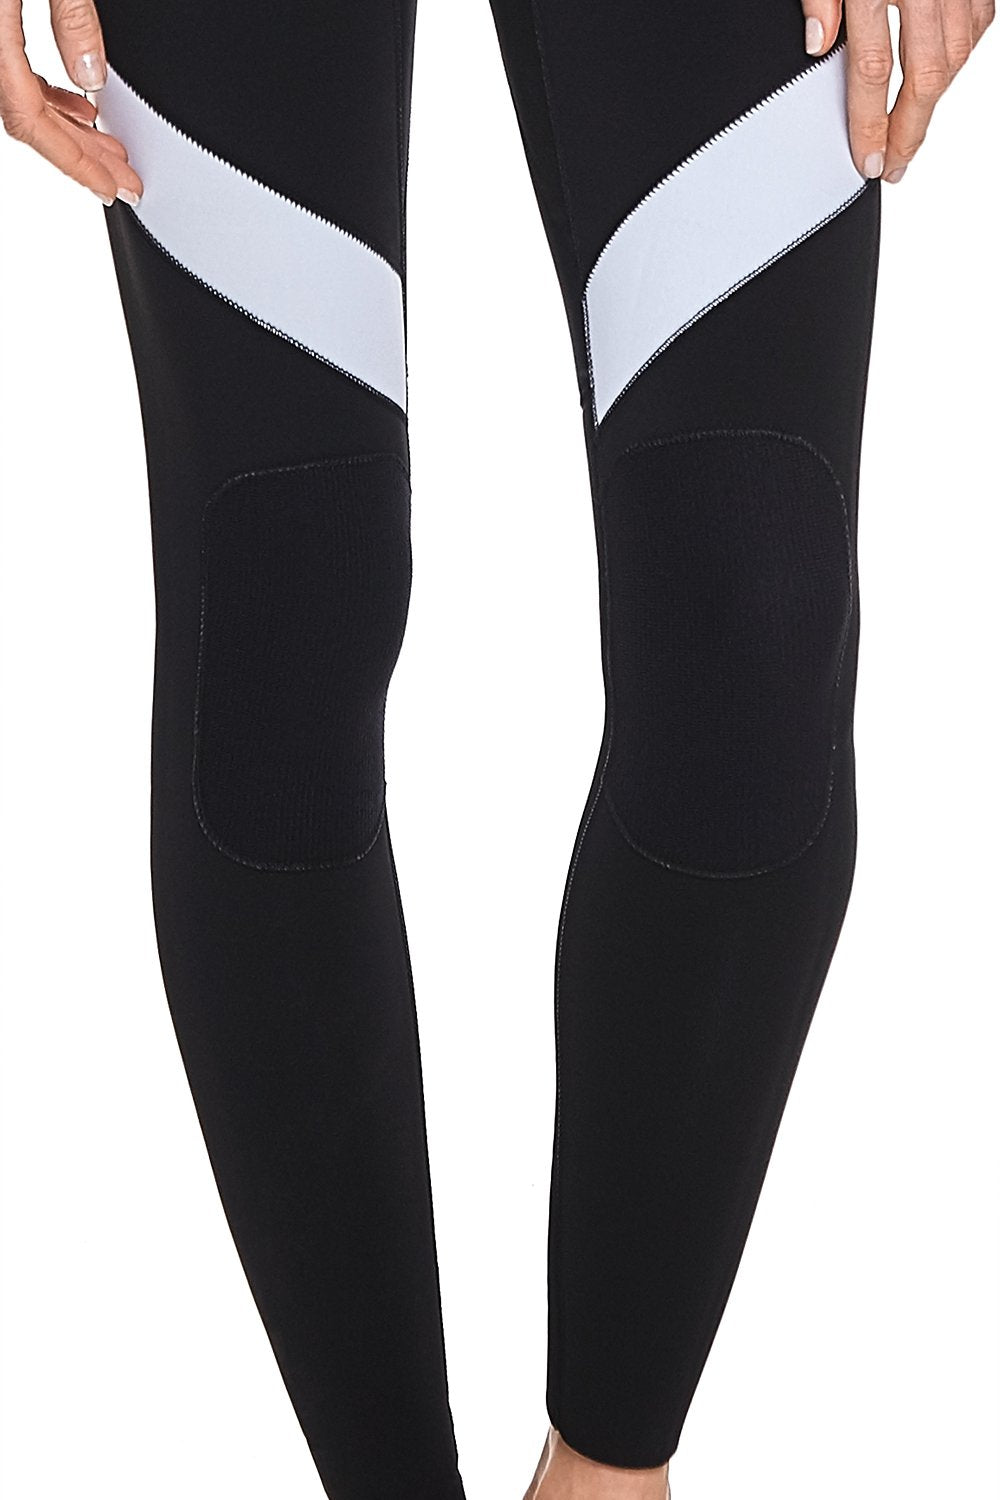 FlashBack 74 3/2 MM Chest Zip GBS Wetsuit